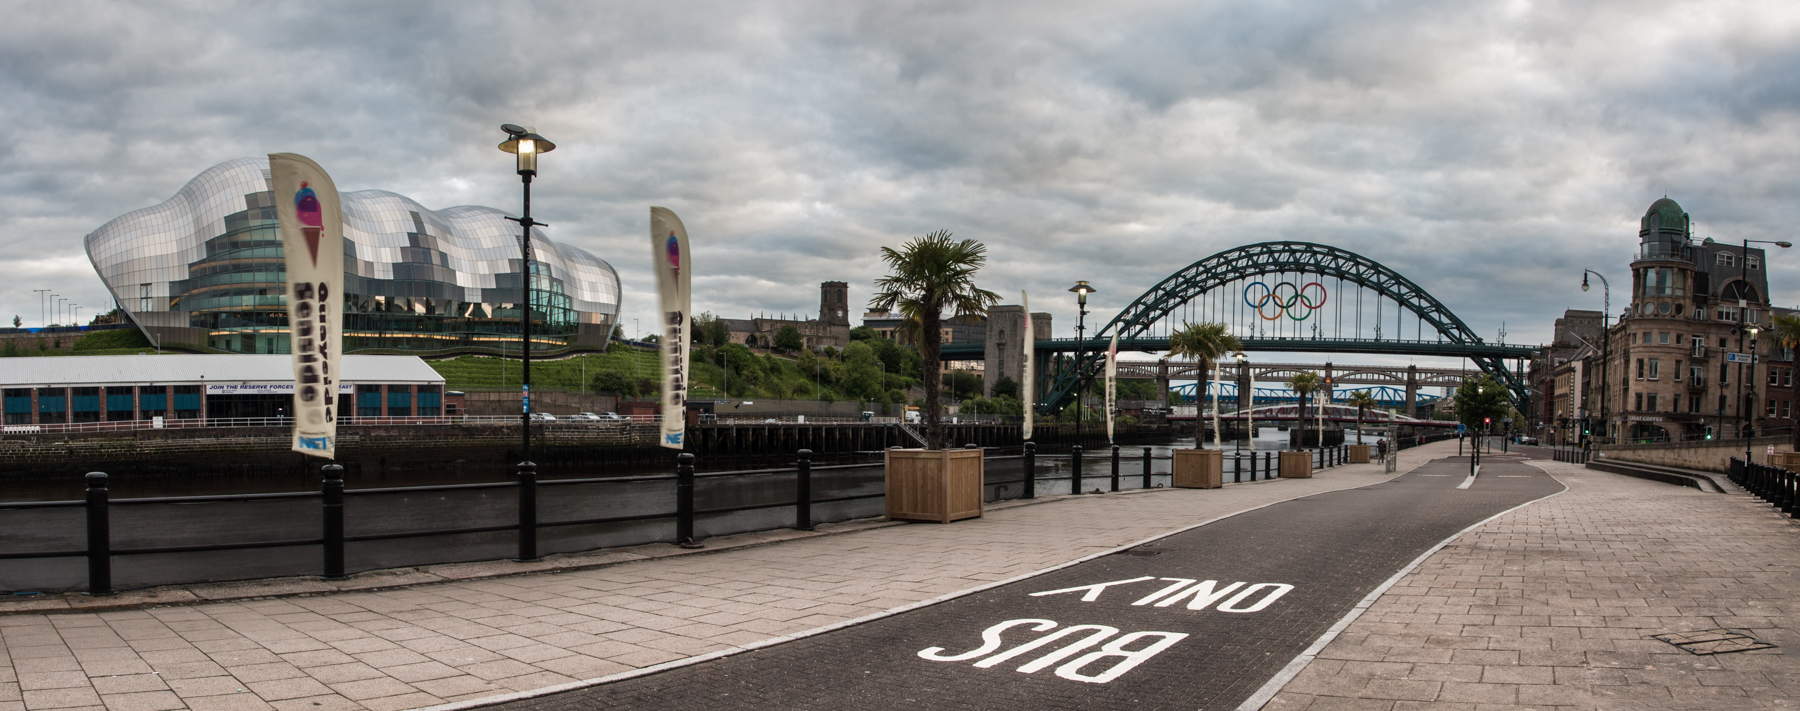 Newcastle Quayside 1